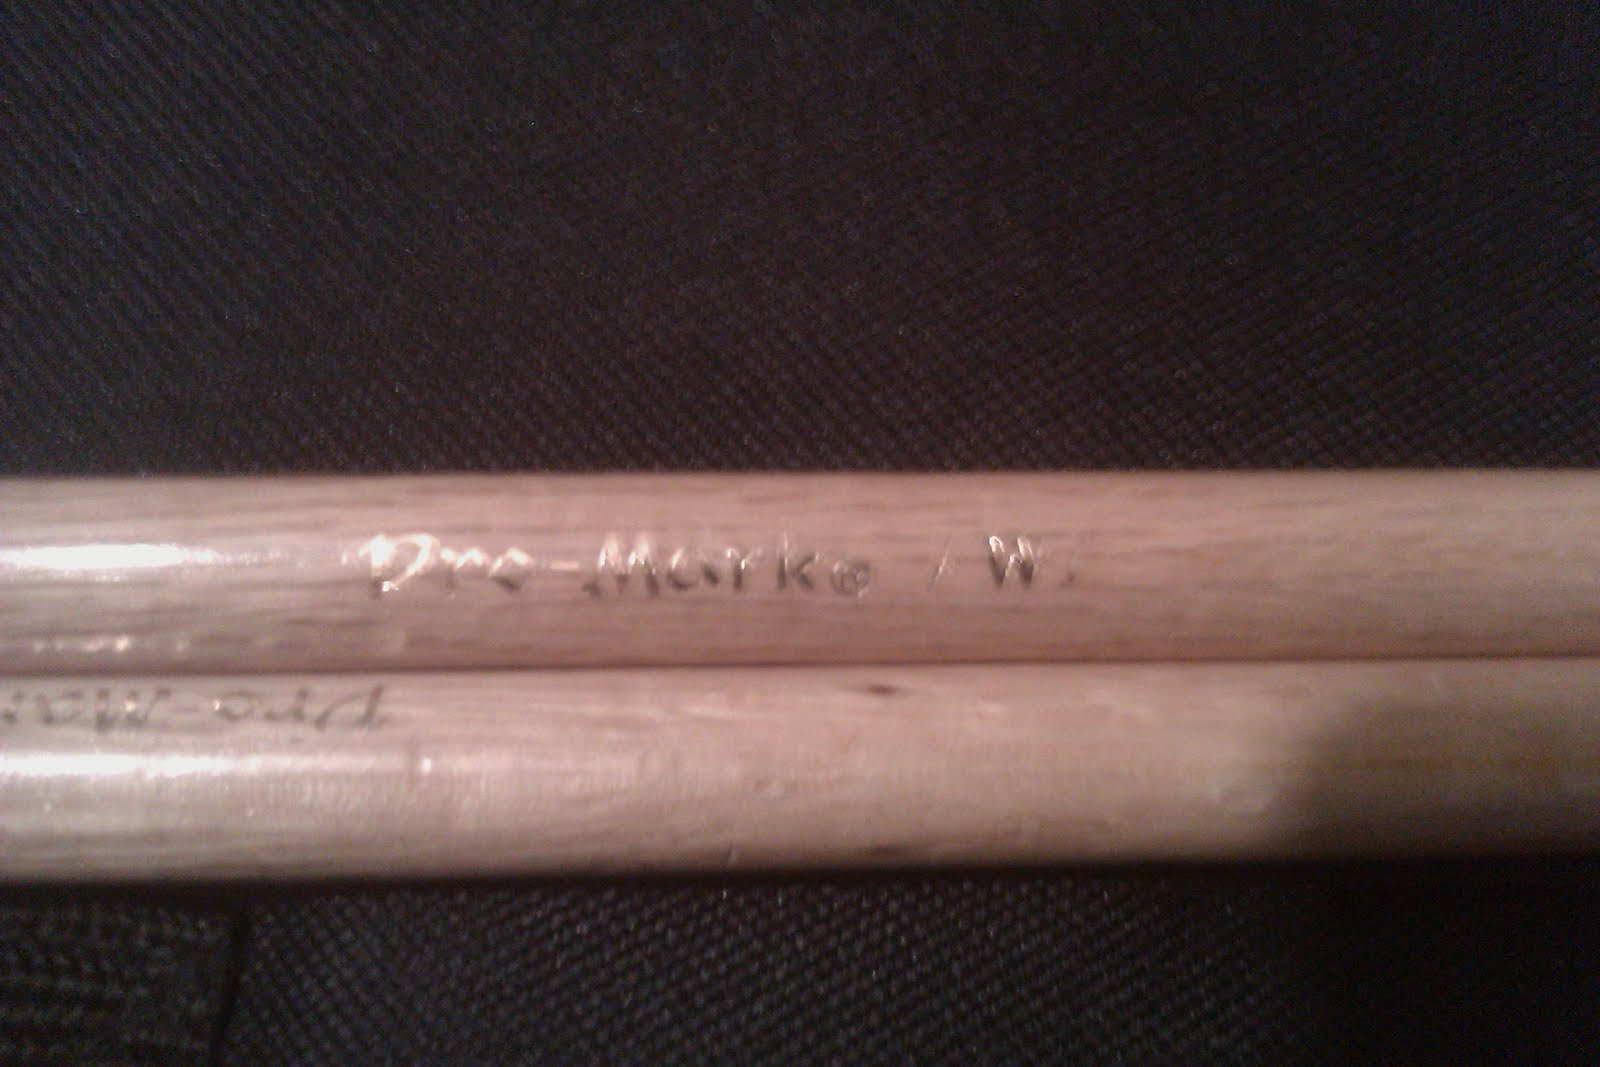 THE PRO-MARK JOE RAYNOR DRUMSTICK